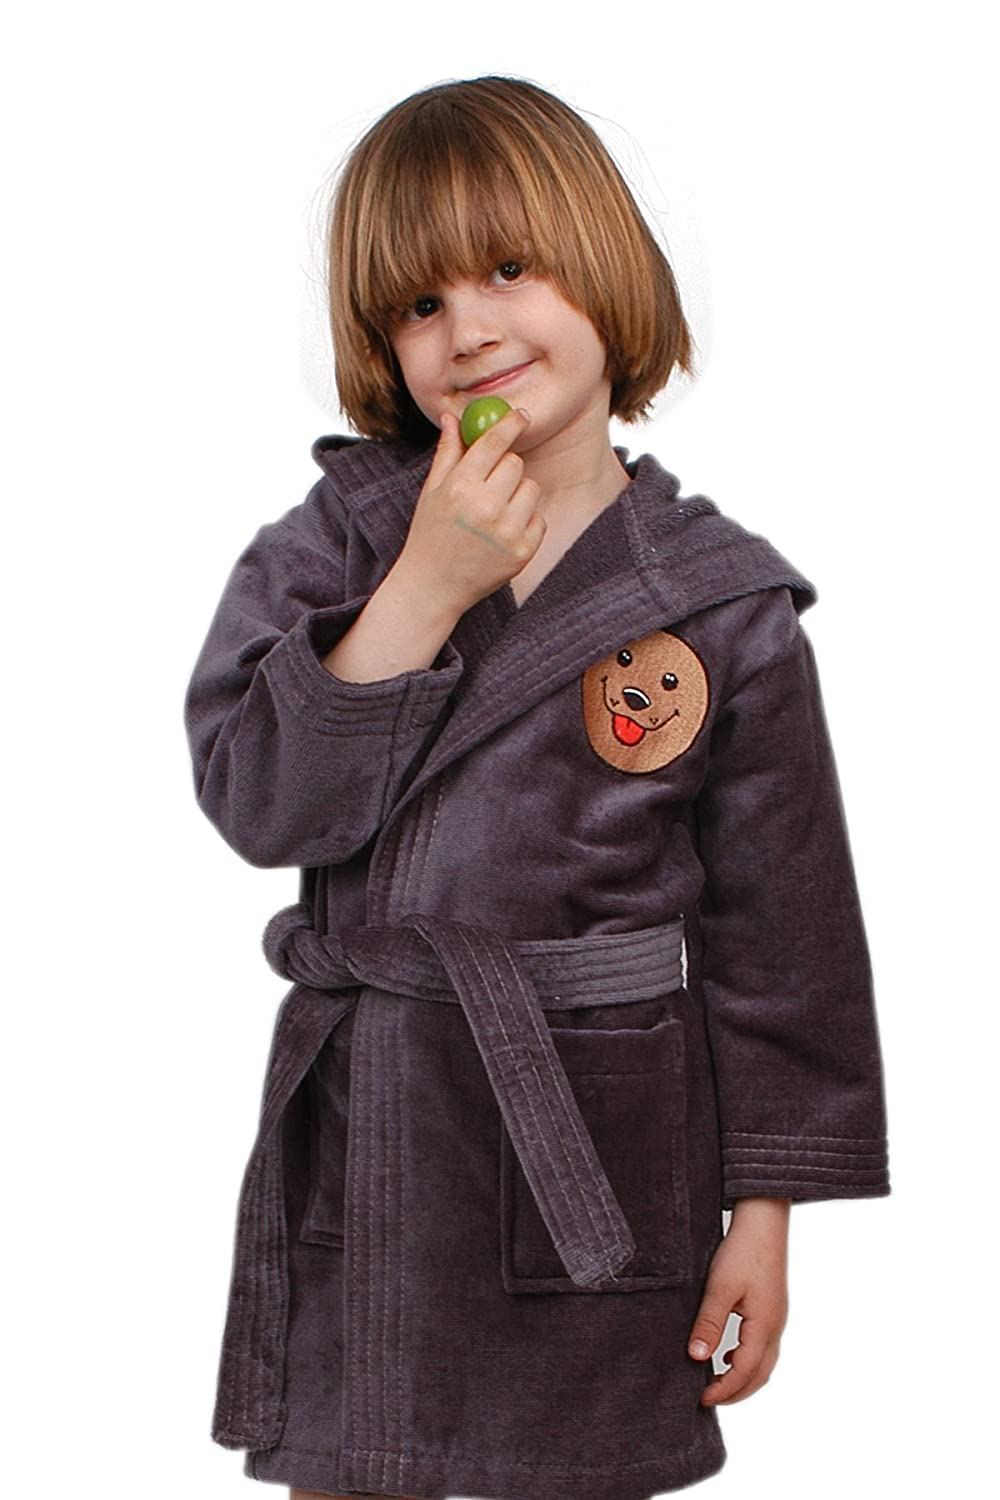 Boys and Girls Kids Ekstra Soft Cotton Hooded Bathrobe with Embroidered Made in Turkey